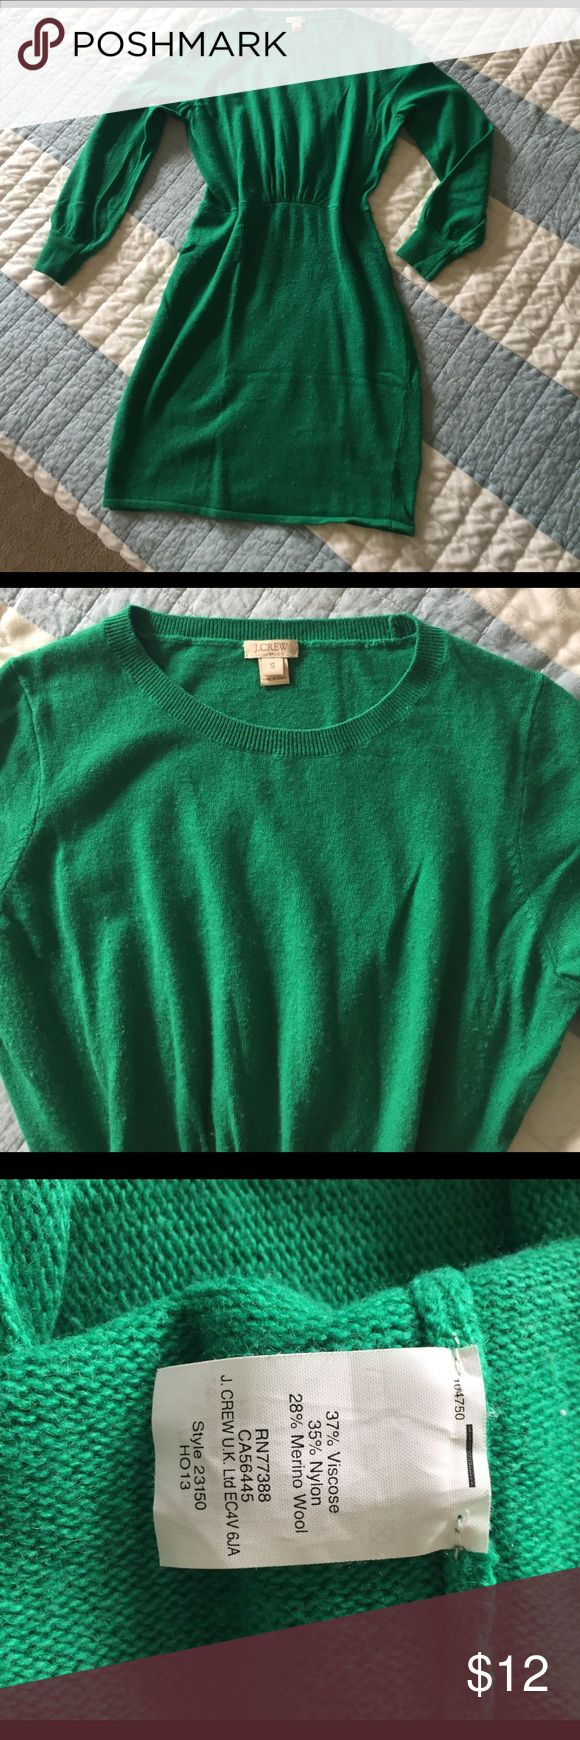 J. Crew (factory) Green Sweater Dress 👗 Great sweater dress in a beautiful Kelly green. Has some cinching at natural waist to give a flattering shape. Some slight pilling from wear, but still looks beautiful! J. Crew Dresses Long Sleeve